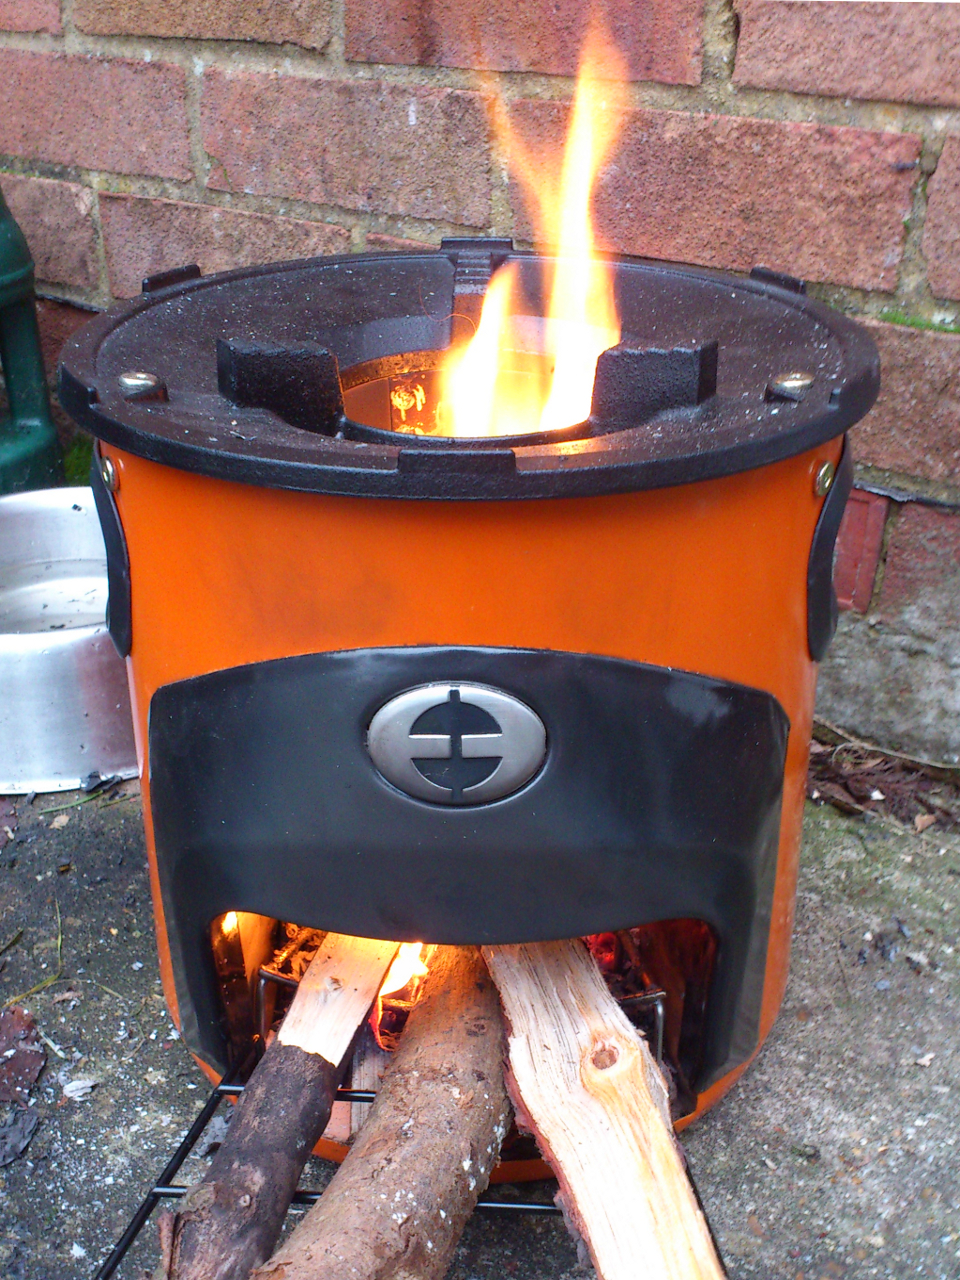 Rocket Stoves Are Small Efficient Stoves That Can Produce A Hot Flame ...